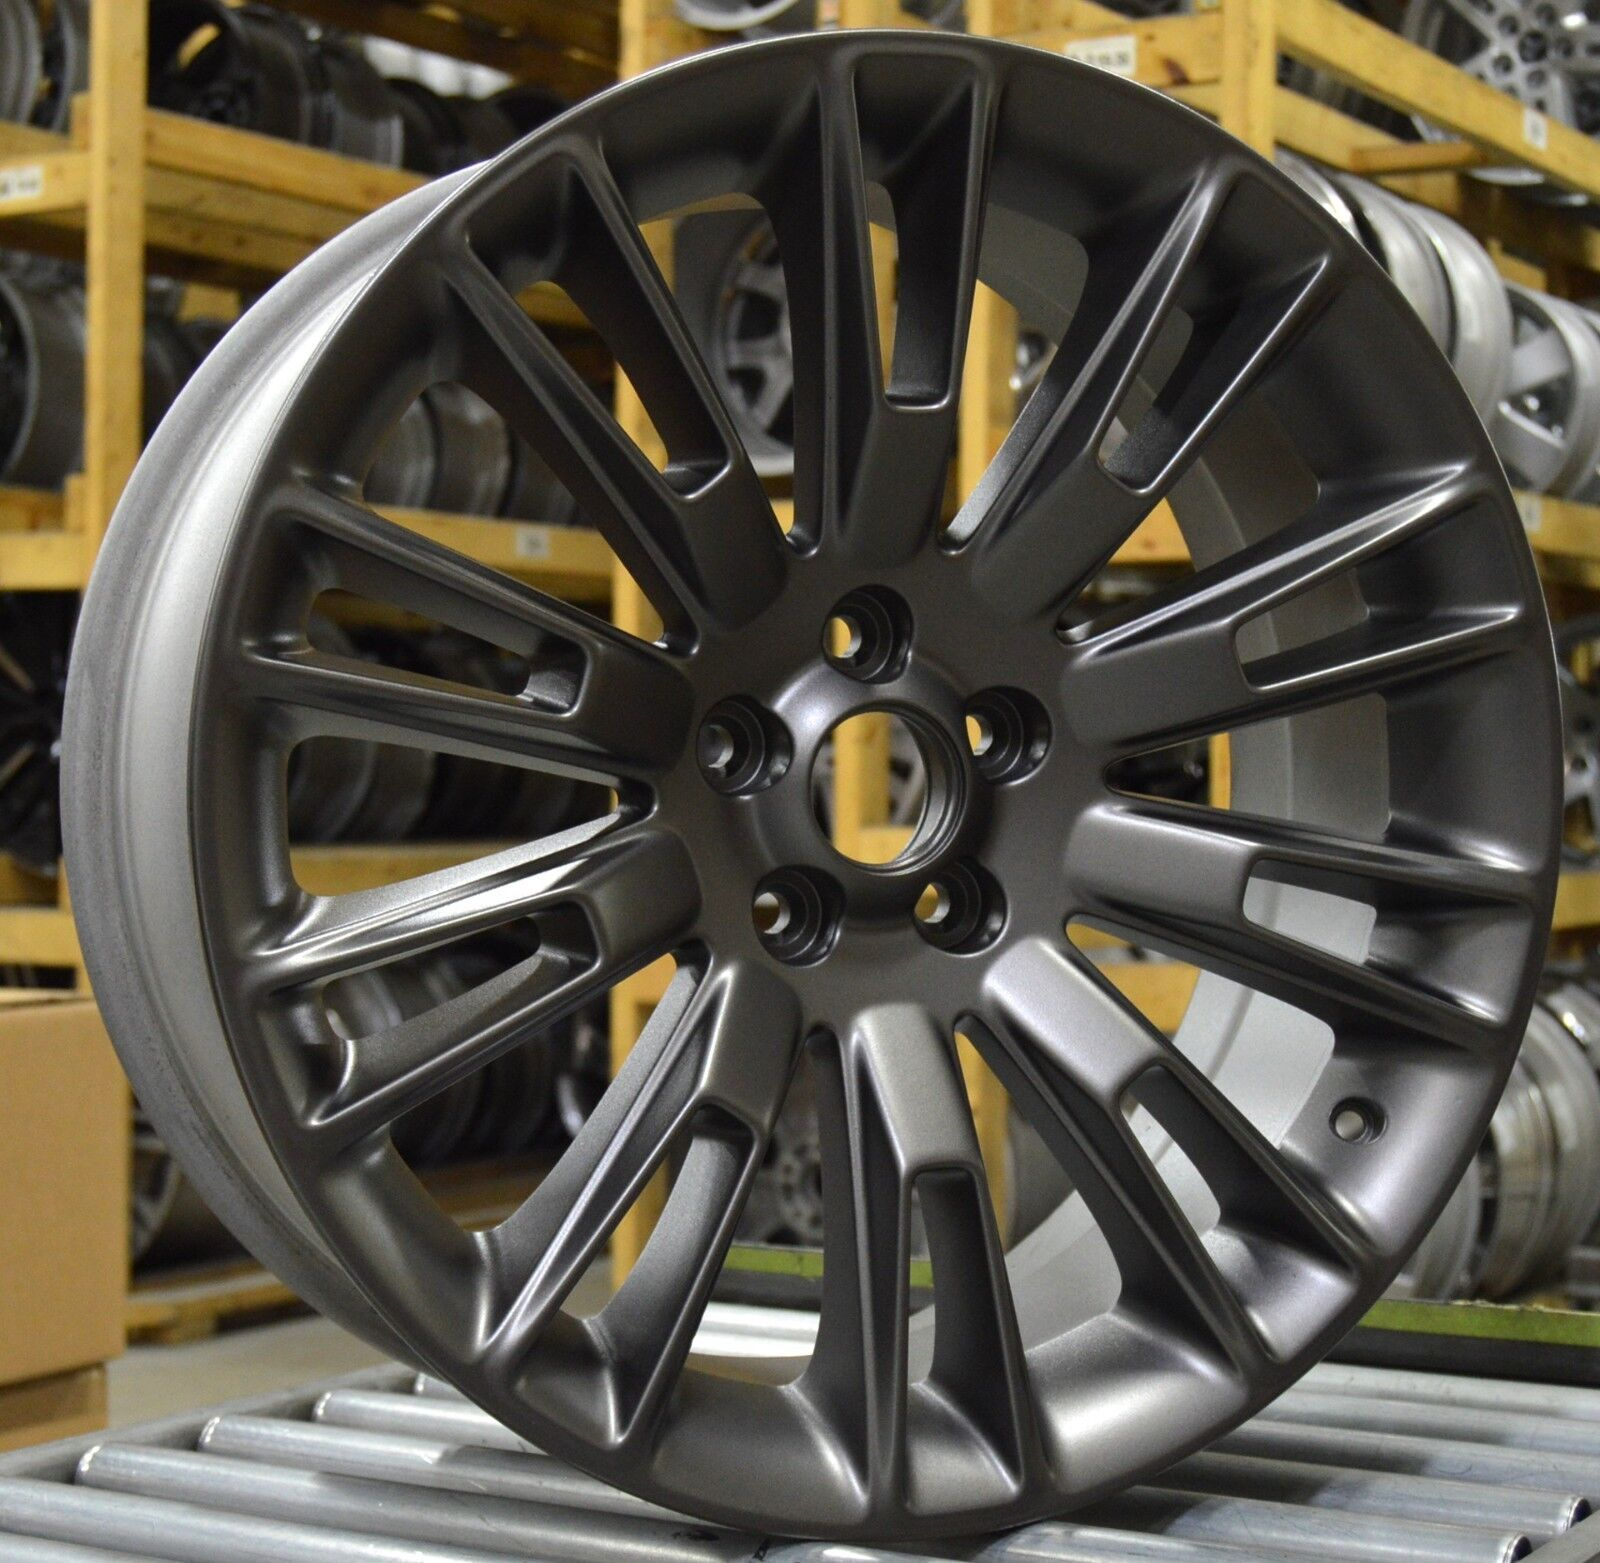 special go this on new made only be sale will rims mopar to chrysler in summer for